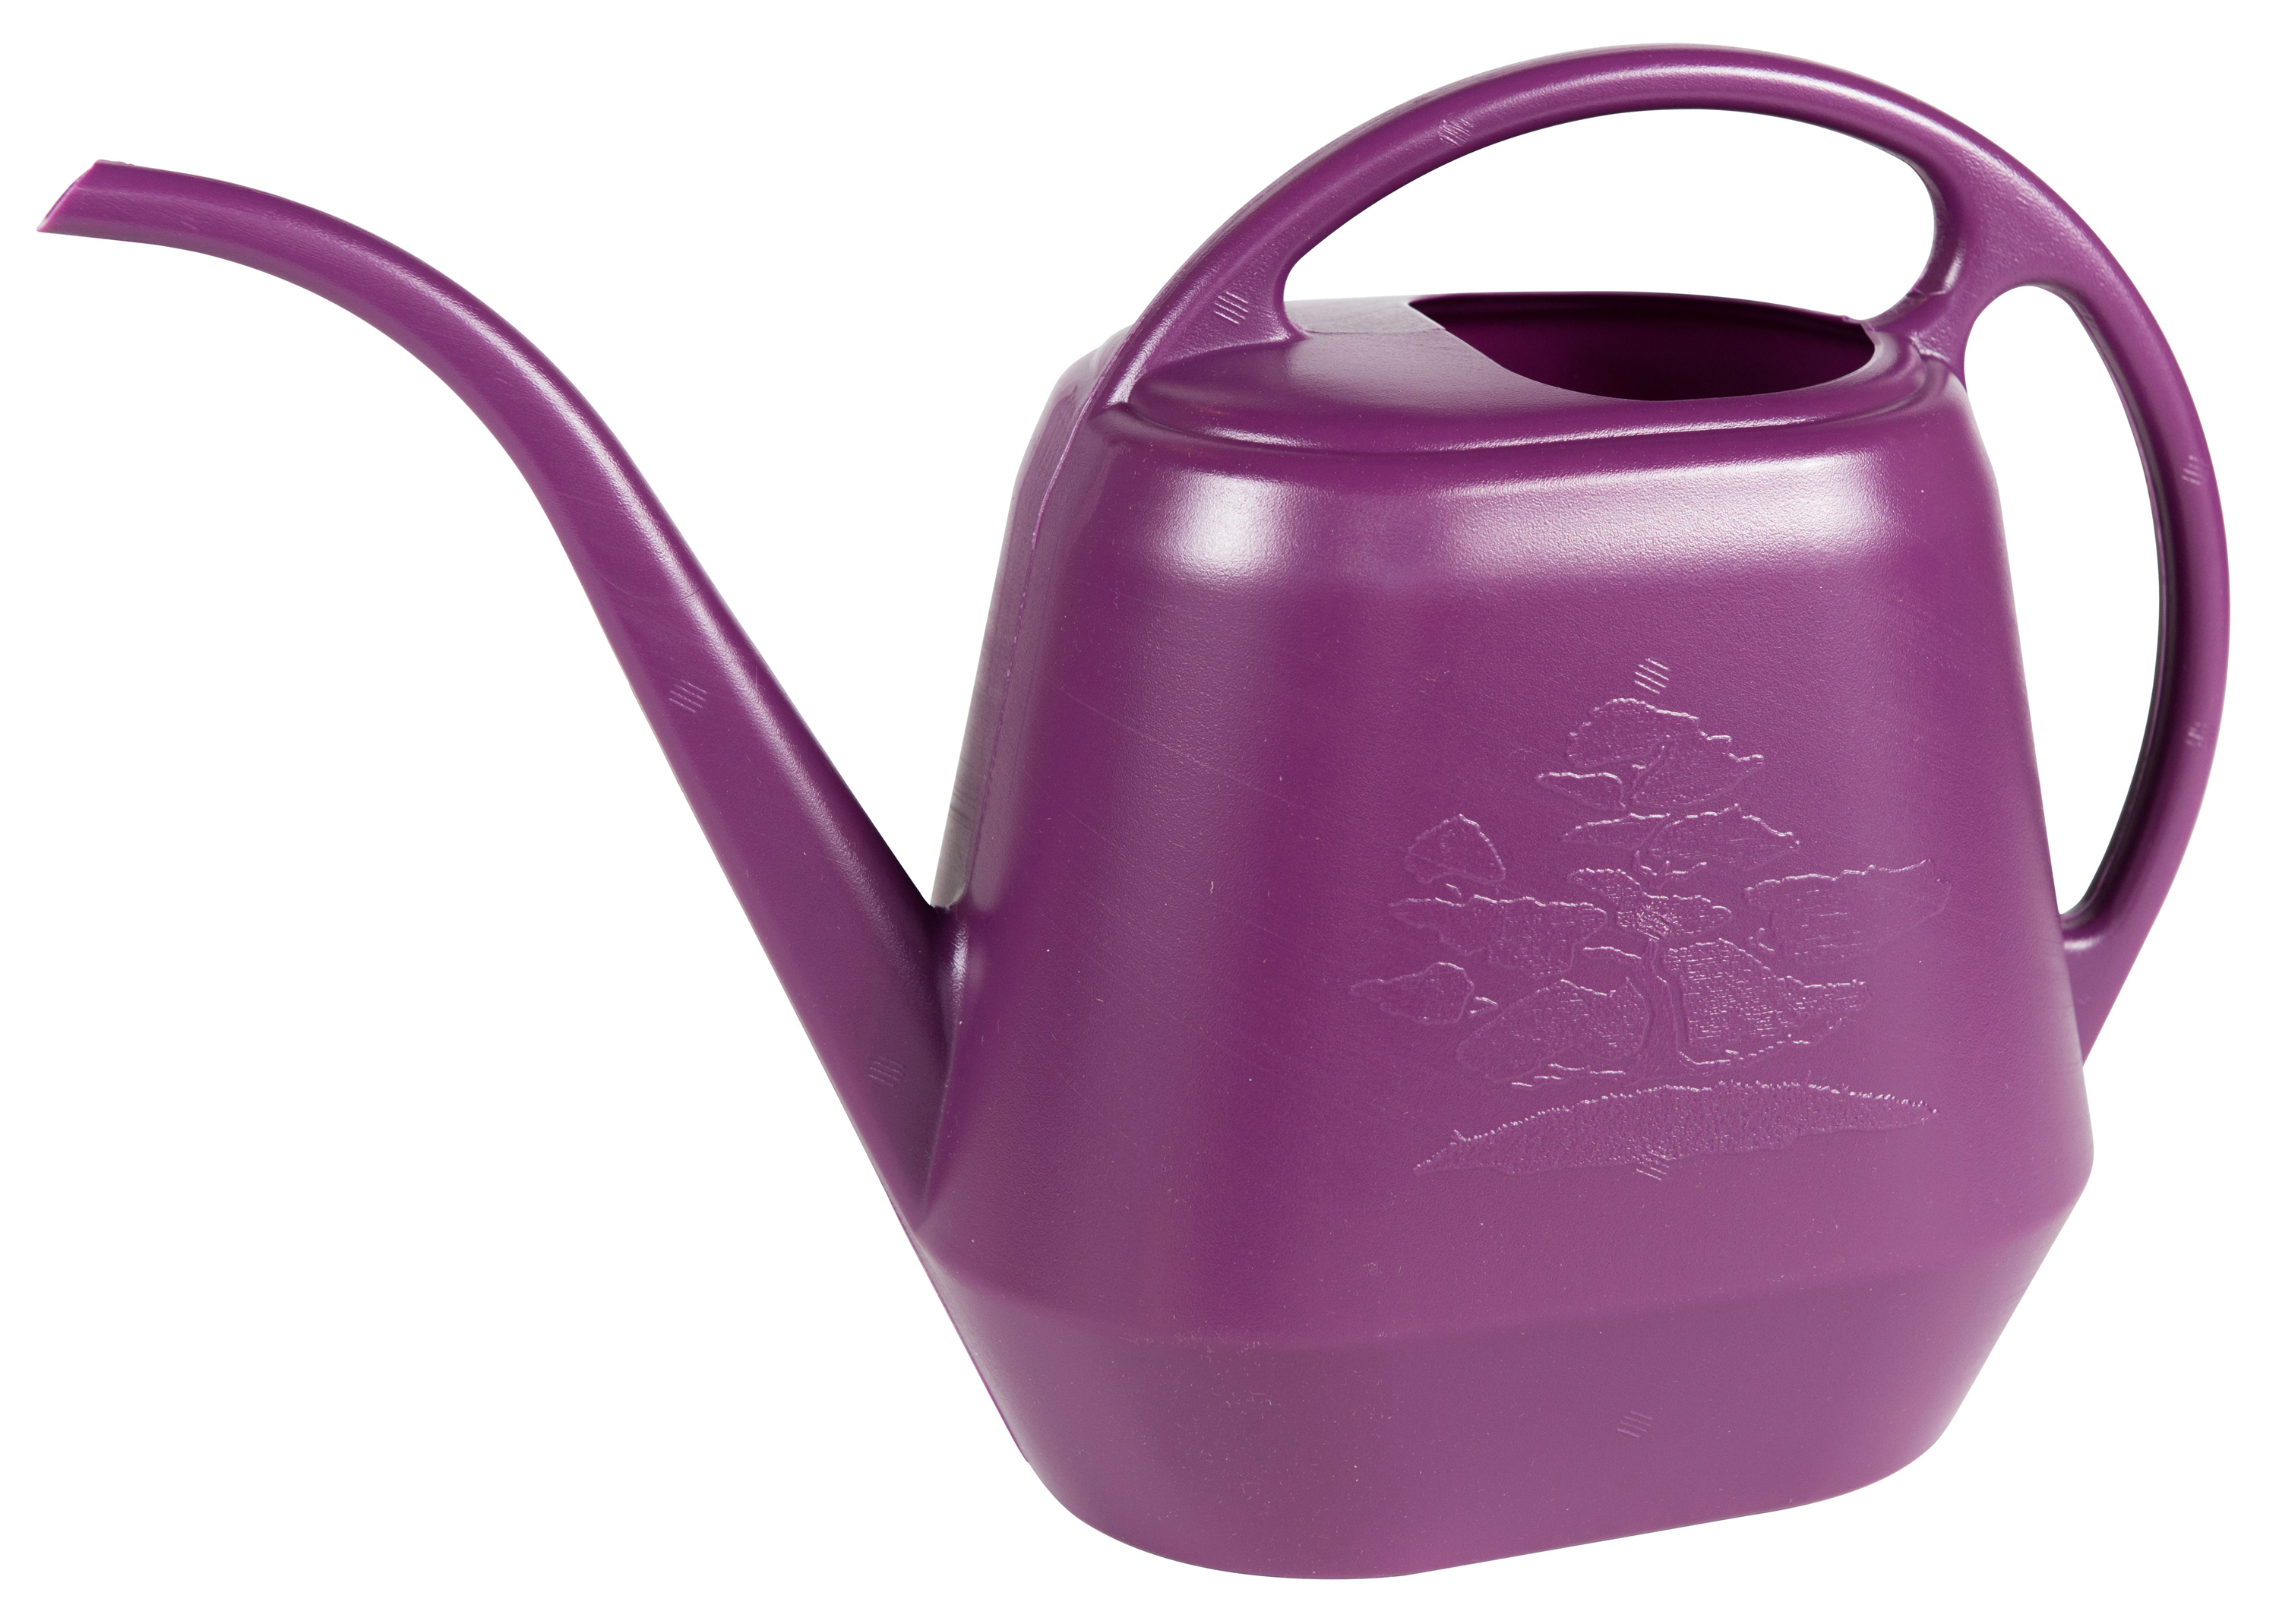 Bloem Aqua Rite Watering Can 56 oz Passion Fruit by Bloem